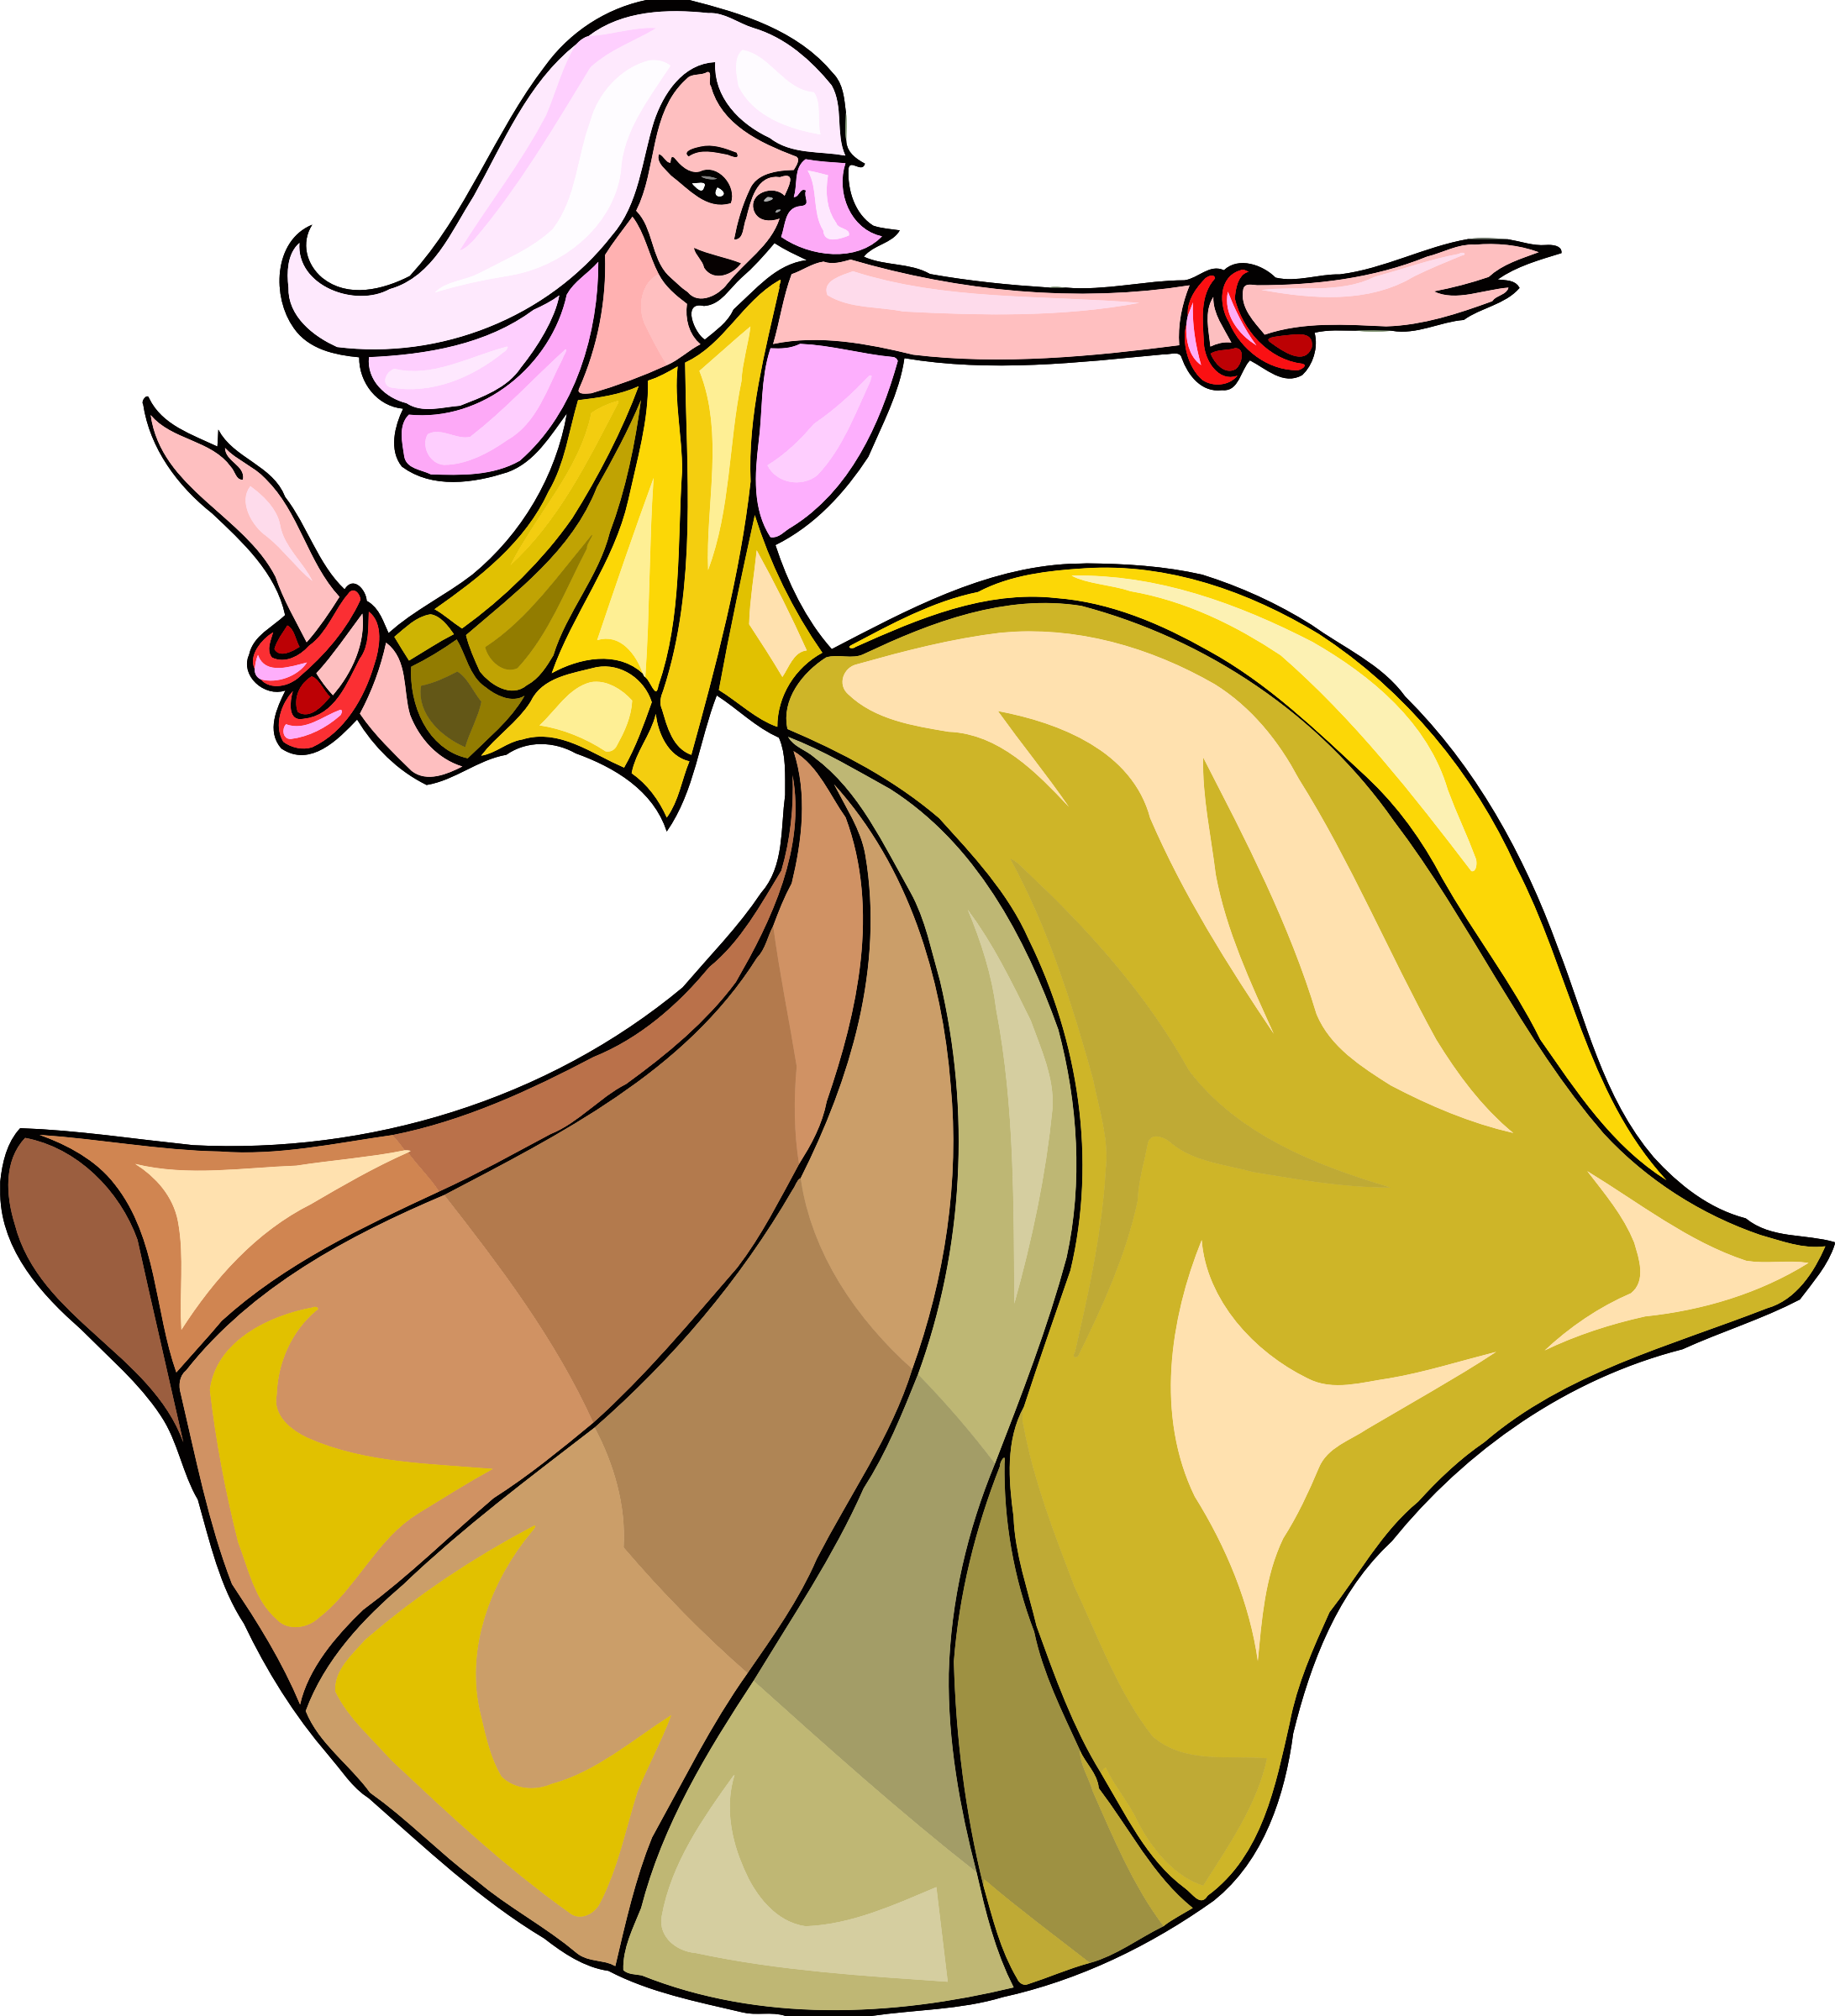 Dancer clipart abstract. Big image png